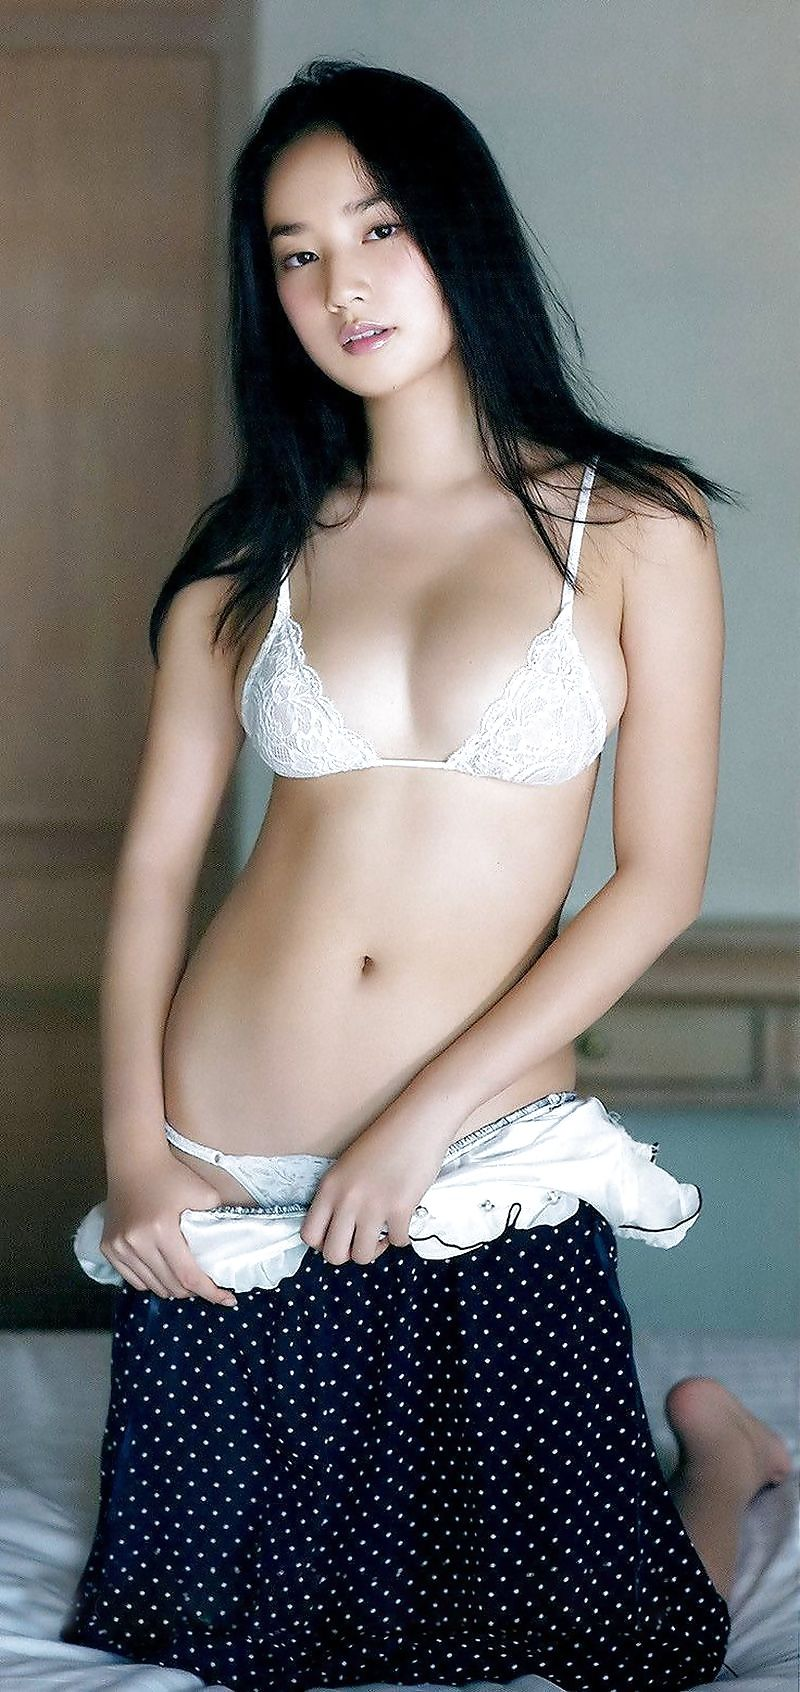 amateur asians: asian women in lingerie 15 | asian beauty